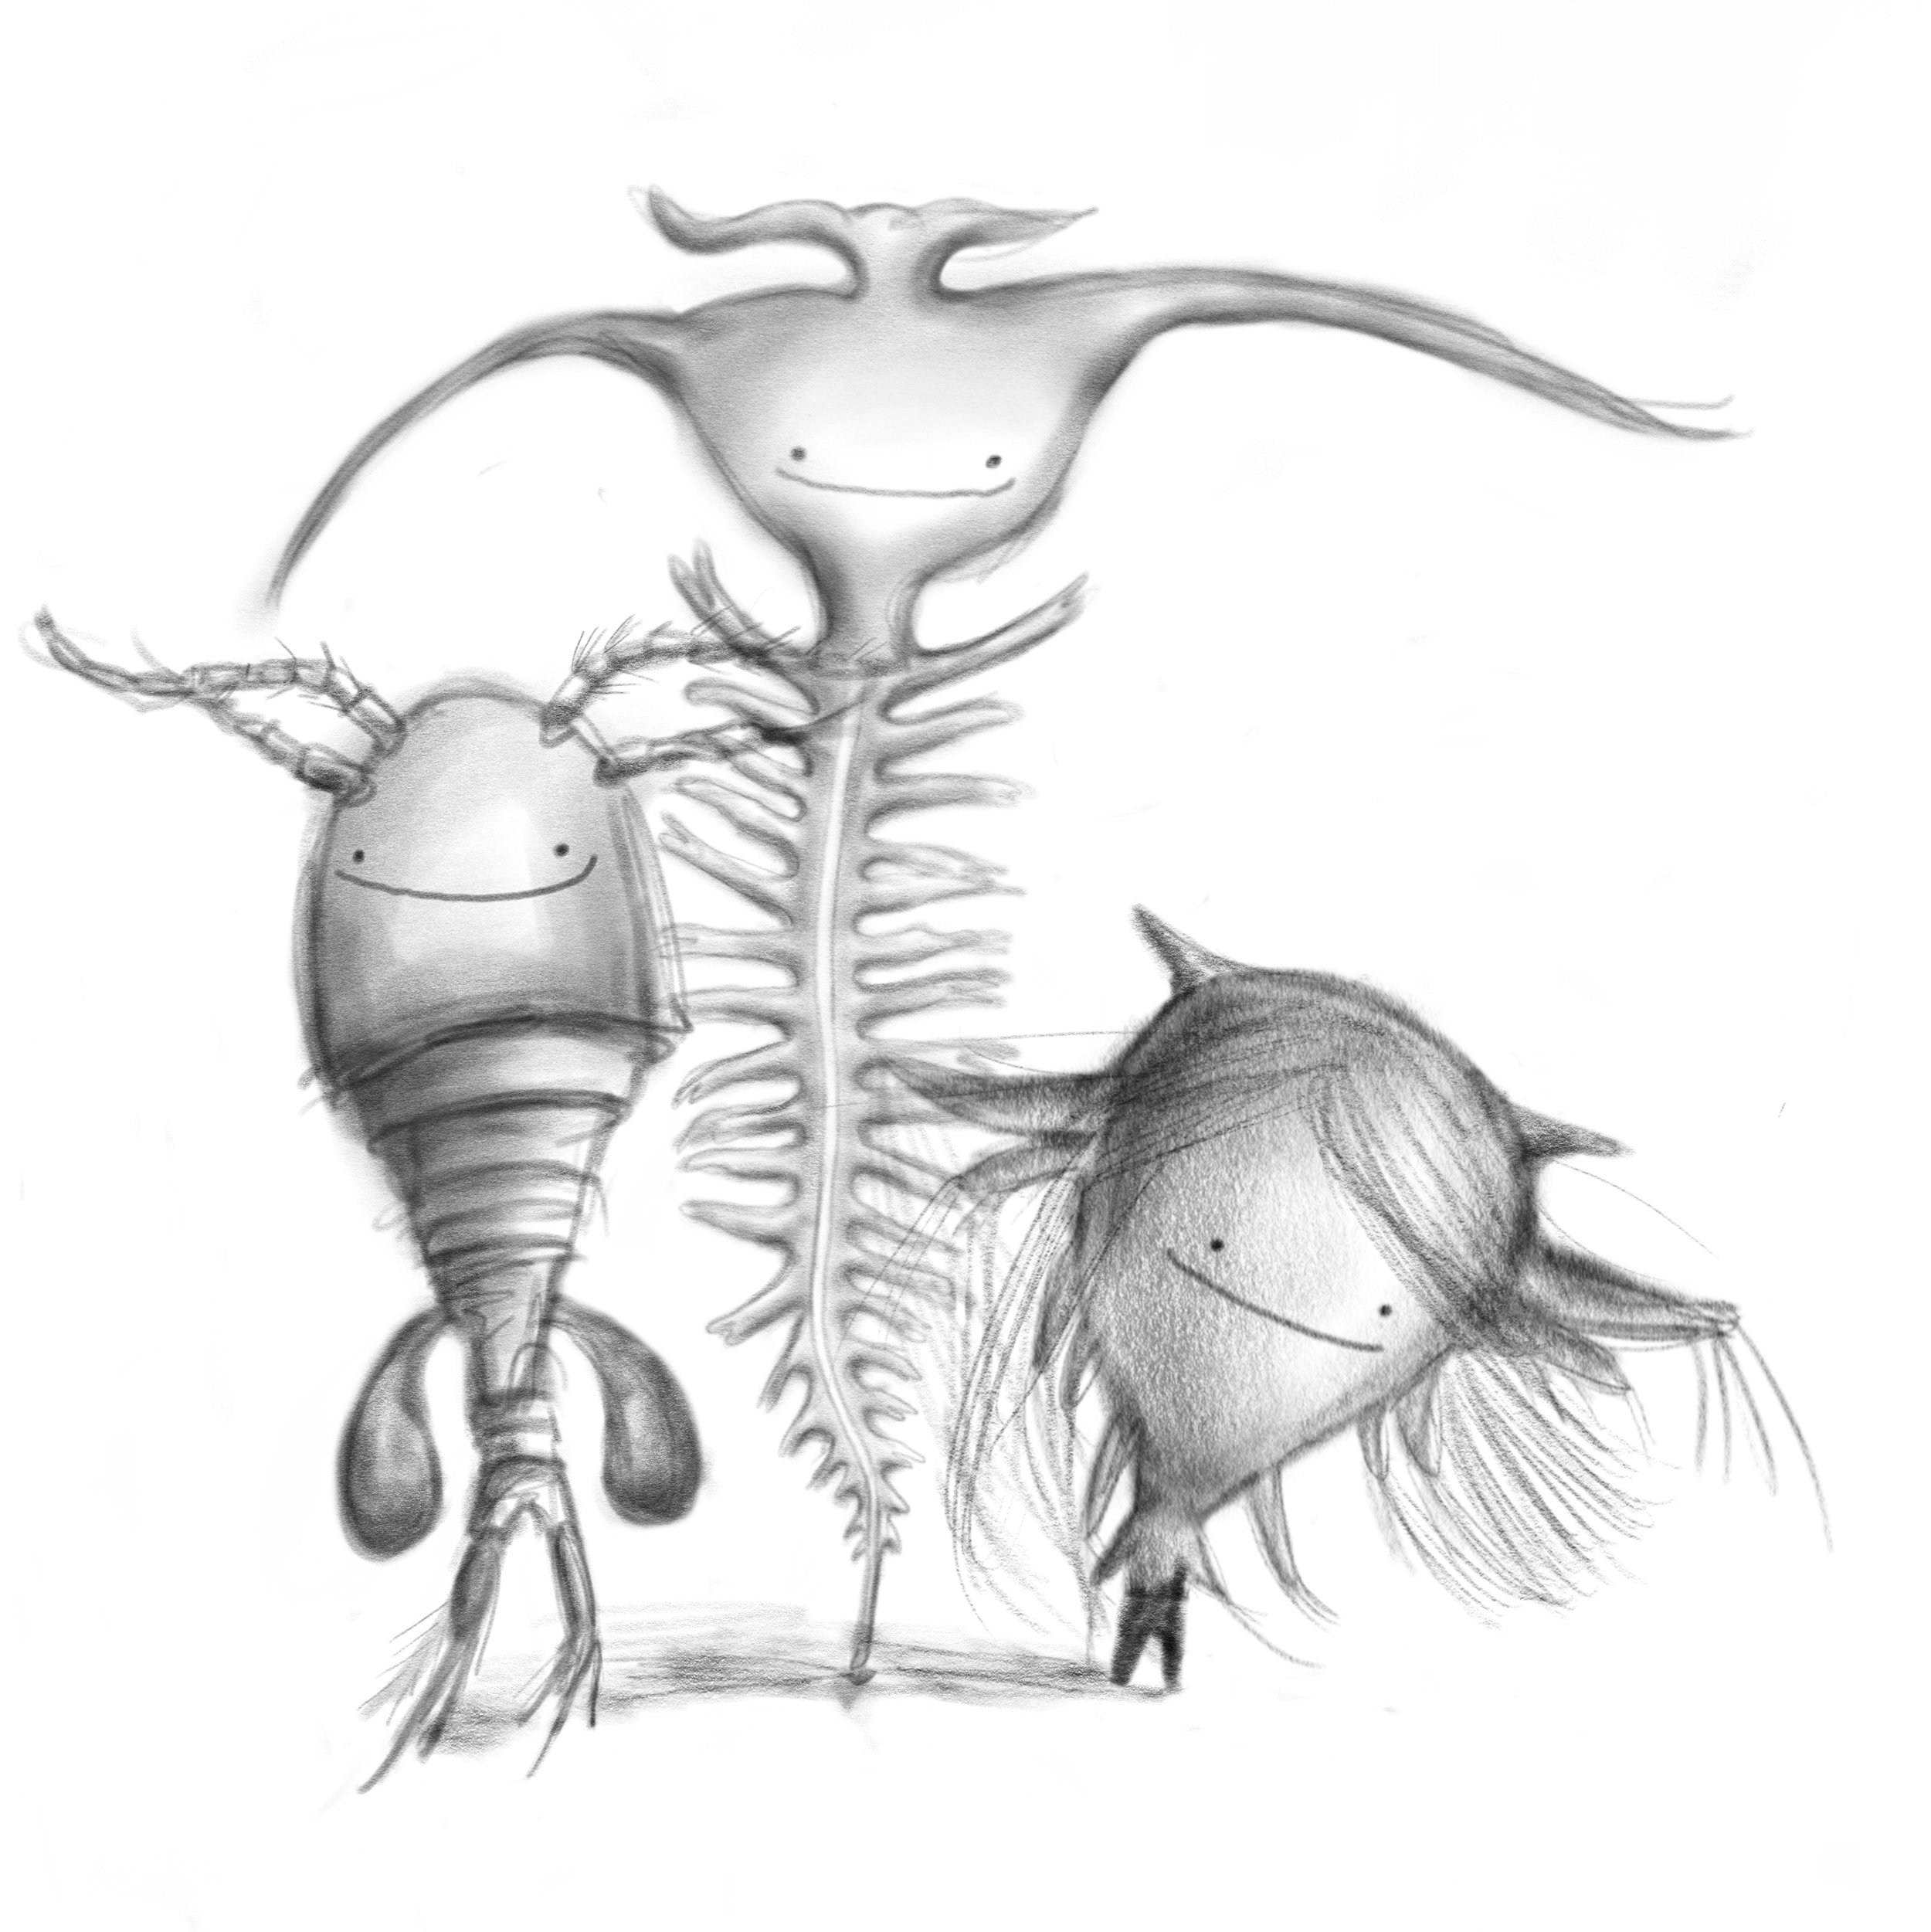 3 Zooplankton  - copepod, tomopteris and barnacle nauplius